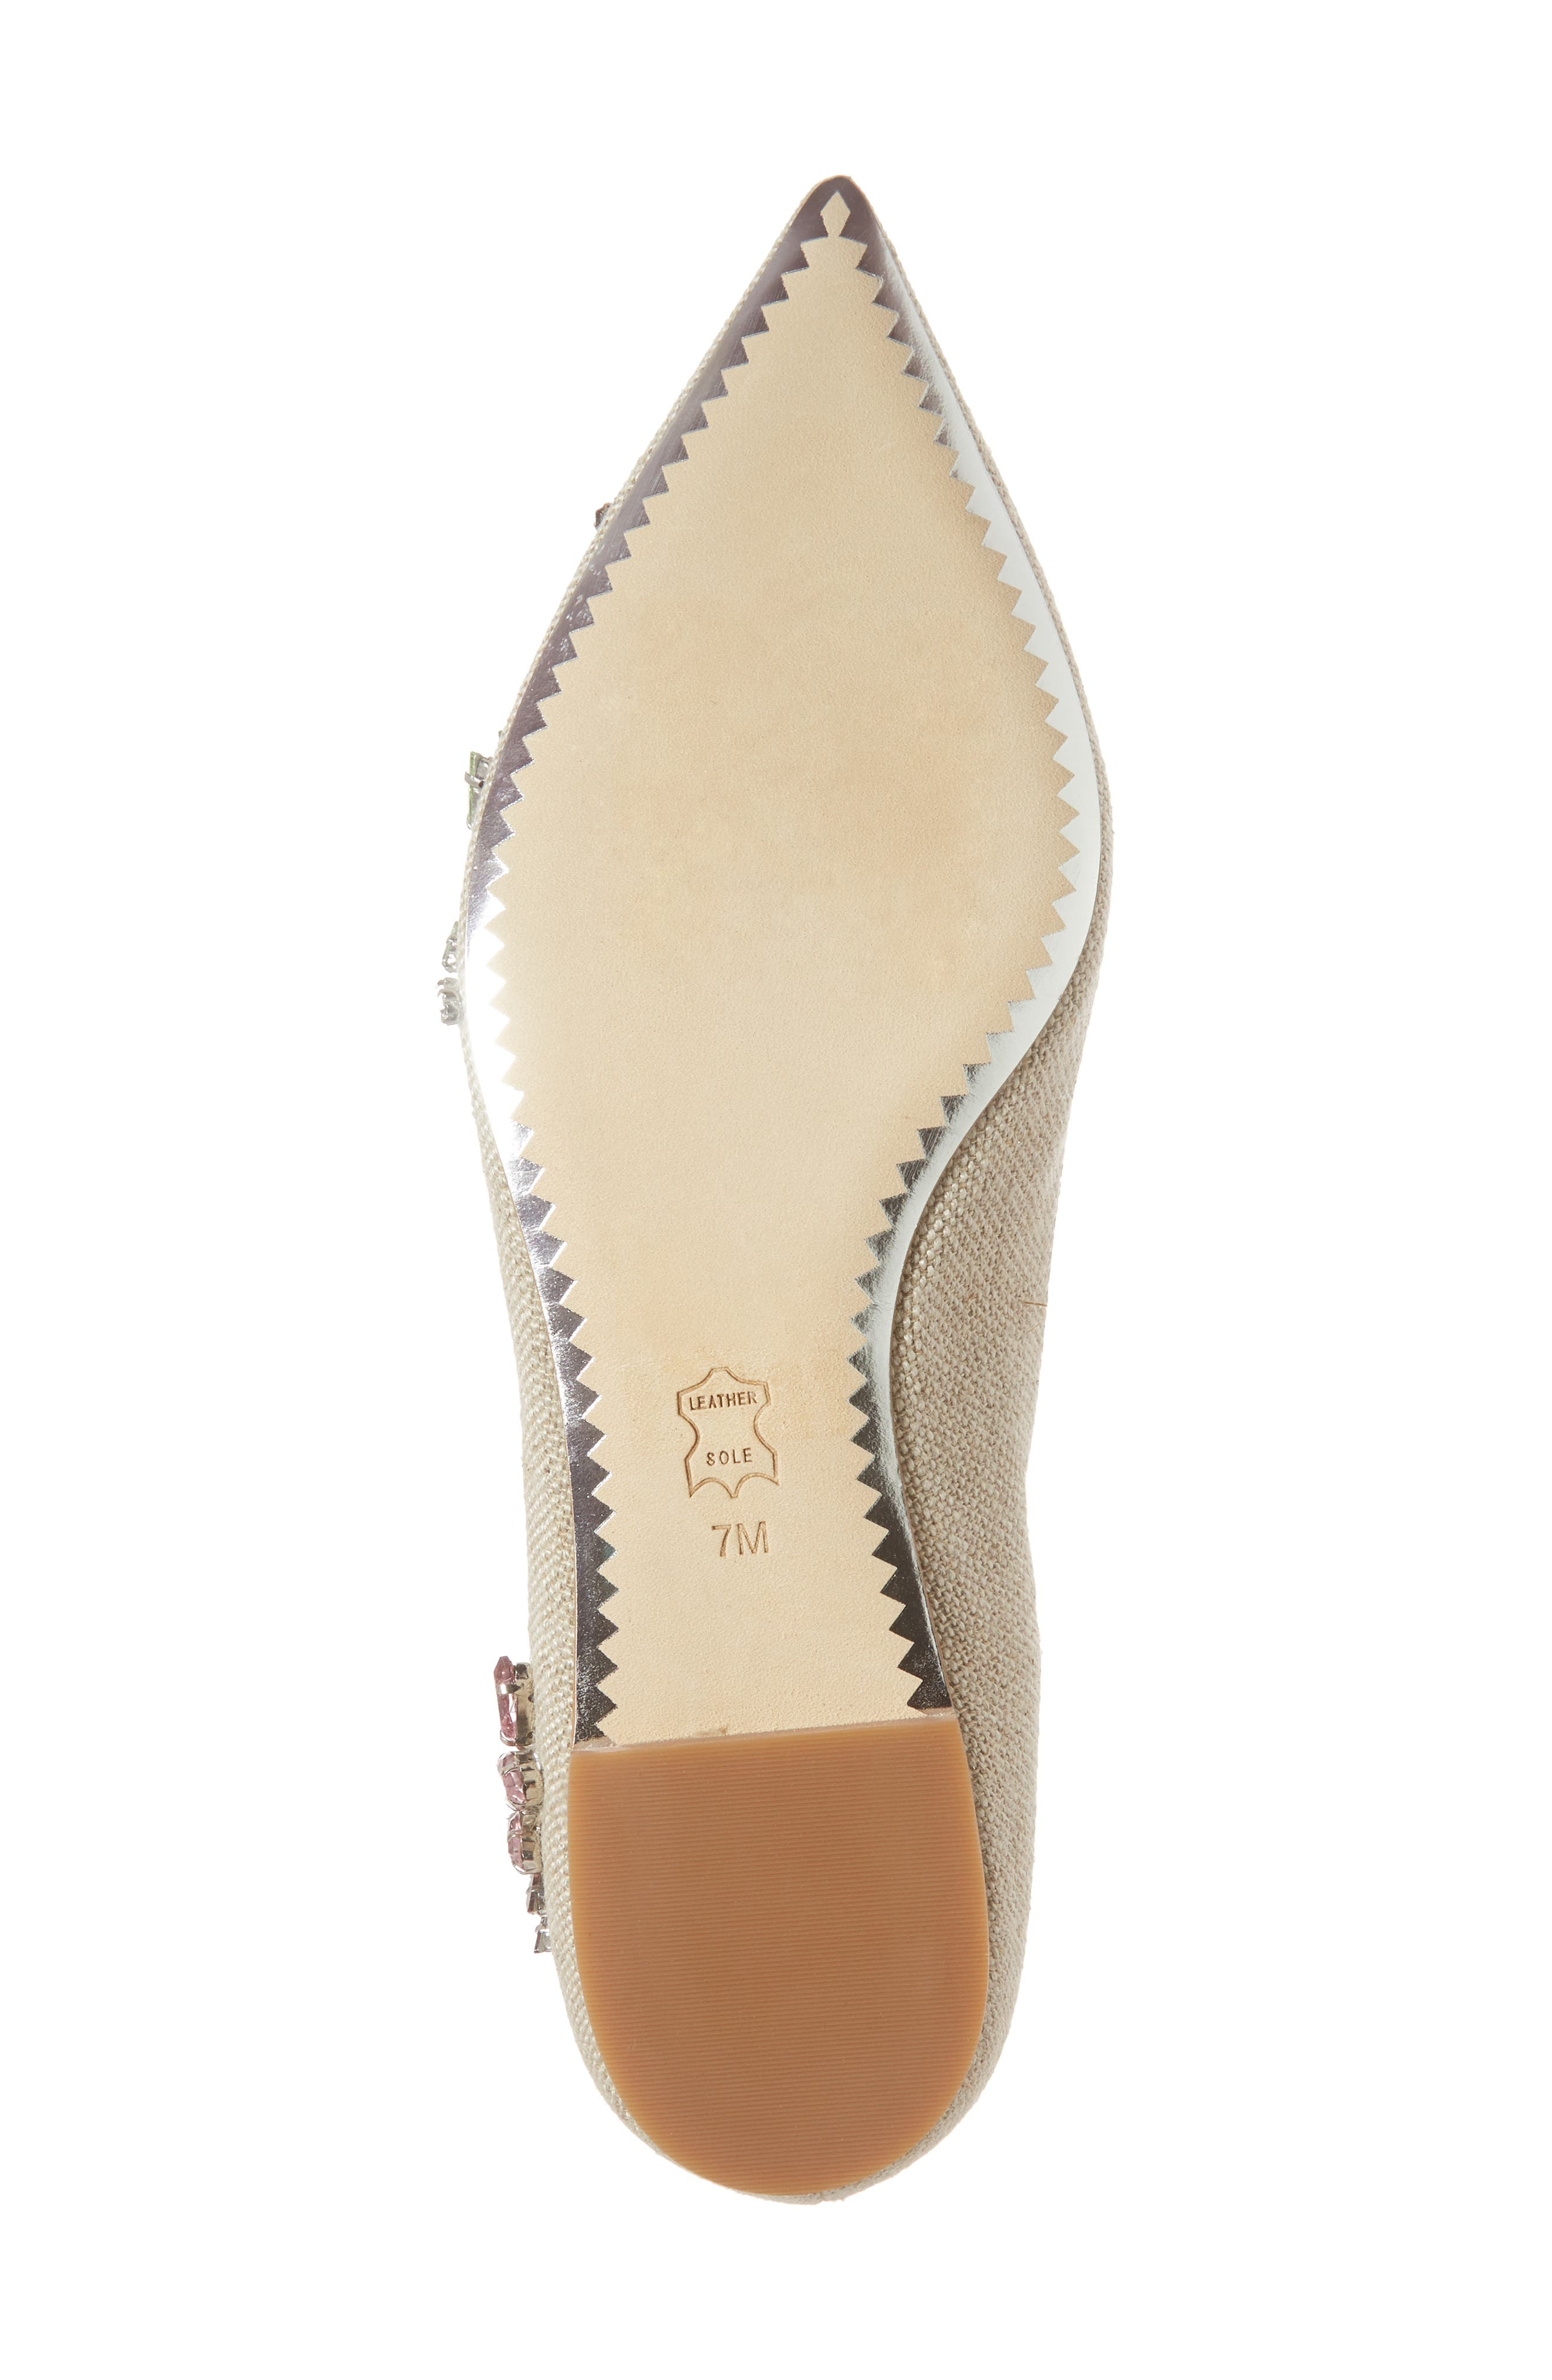 Meadow Embellished Pointy Toe Flat,                             Alternate thumbnail 6, color,                             Natural/ Multi Color